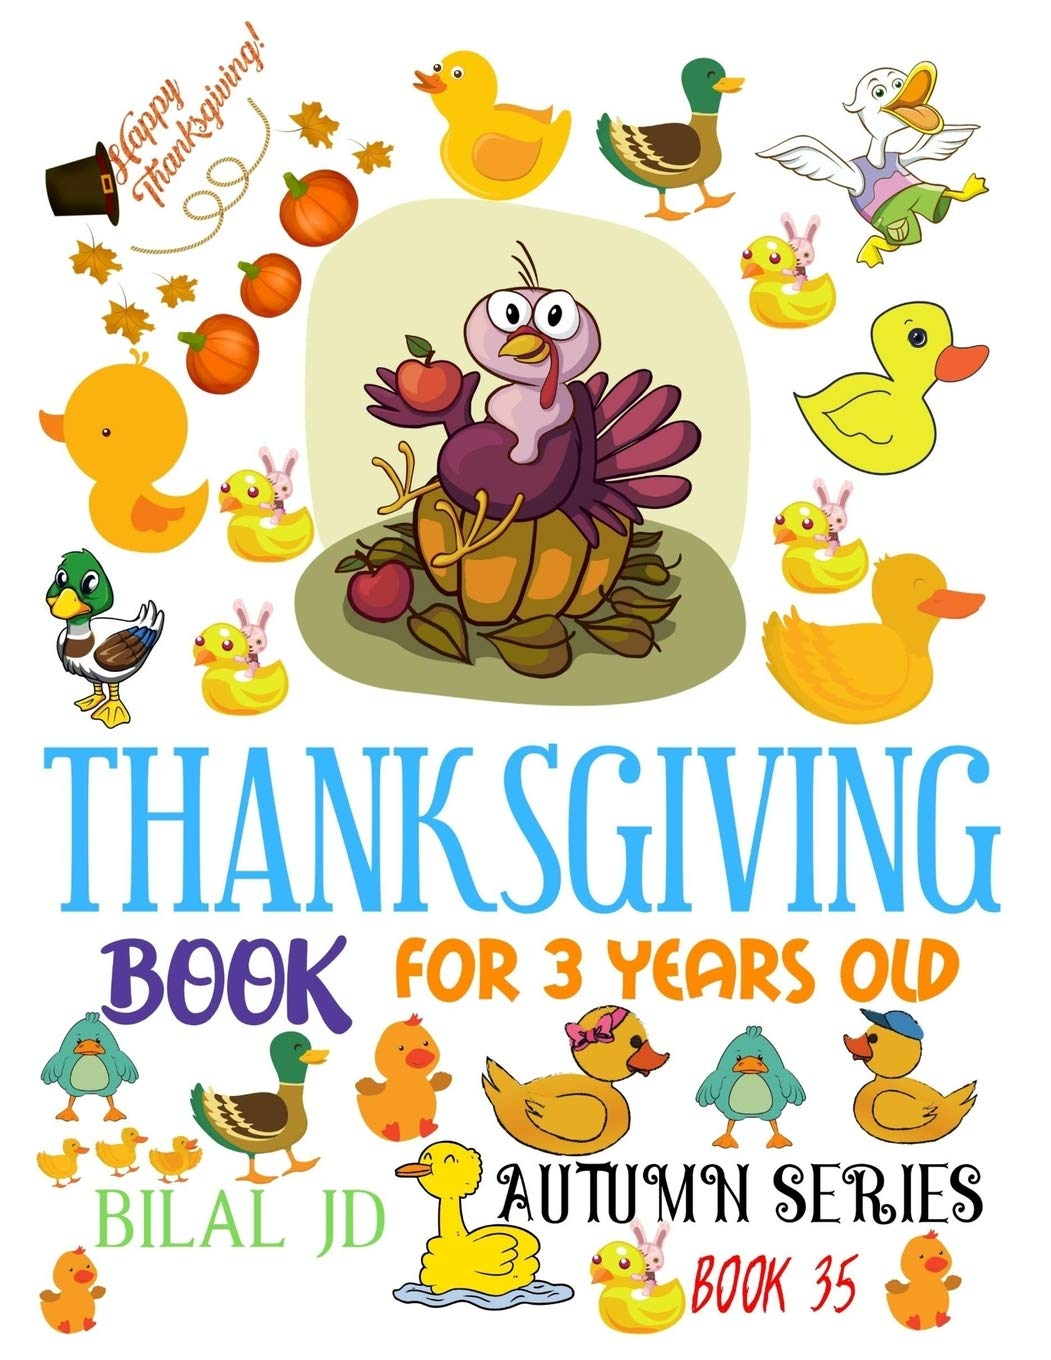 - THANKSGIVING BOOK FOR 3 YEARS OLD: COLORING BOOKS: ACTIVITY BOOKS